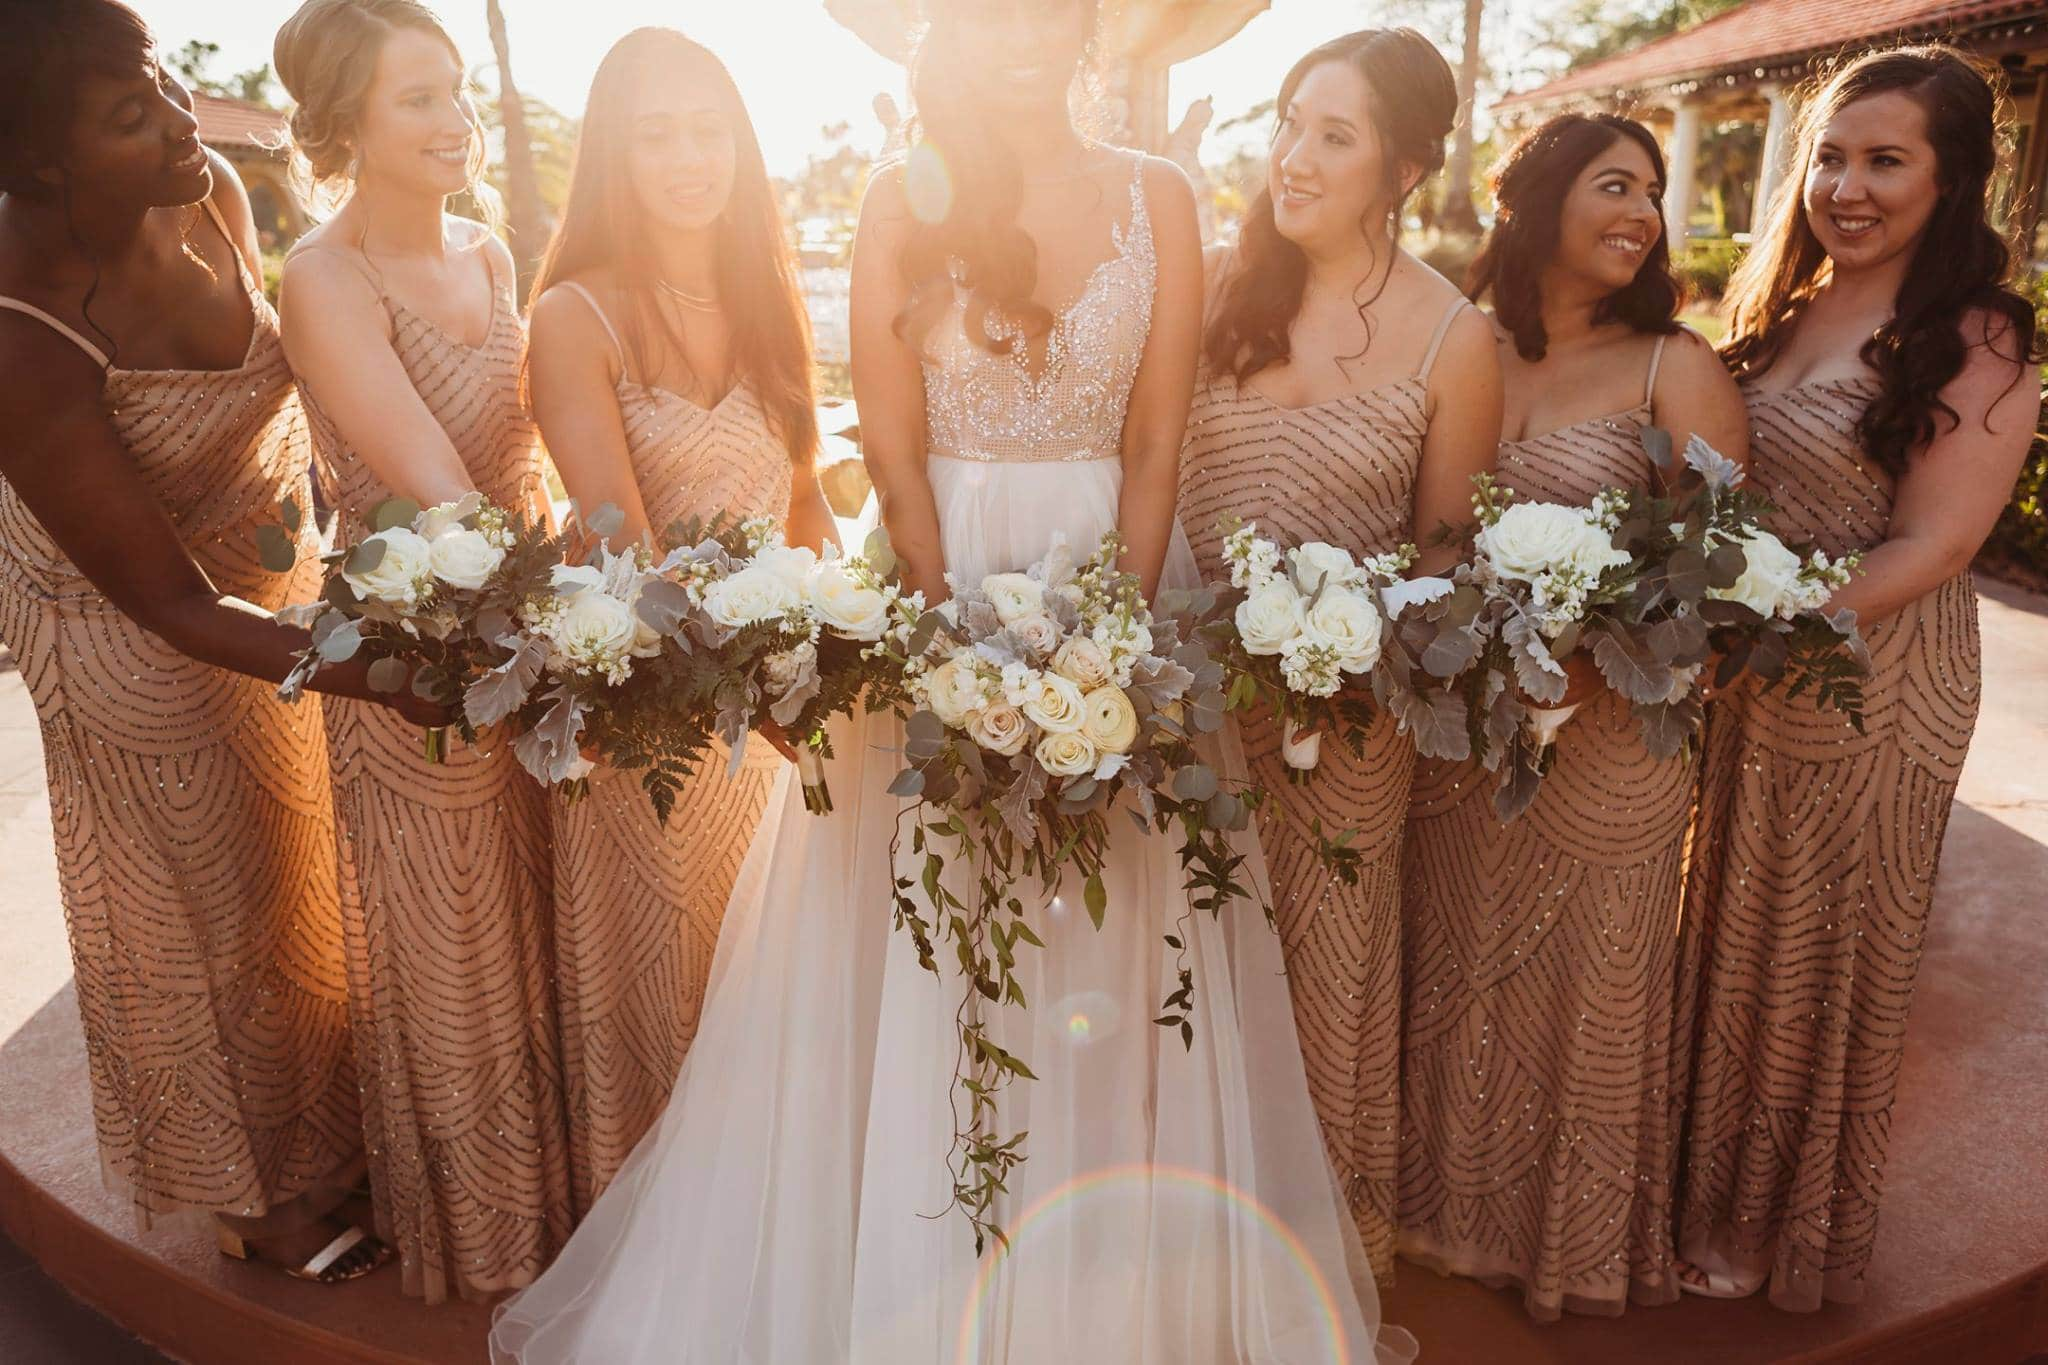 Brides and Bridesmaids holding Elegant Earthy Wedding Bouquet